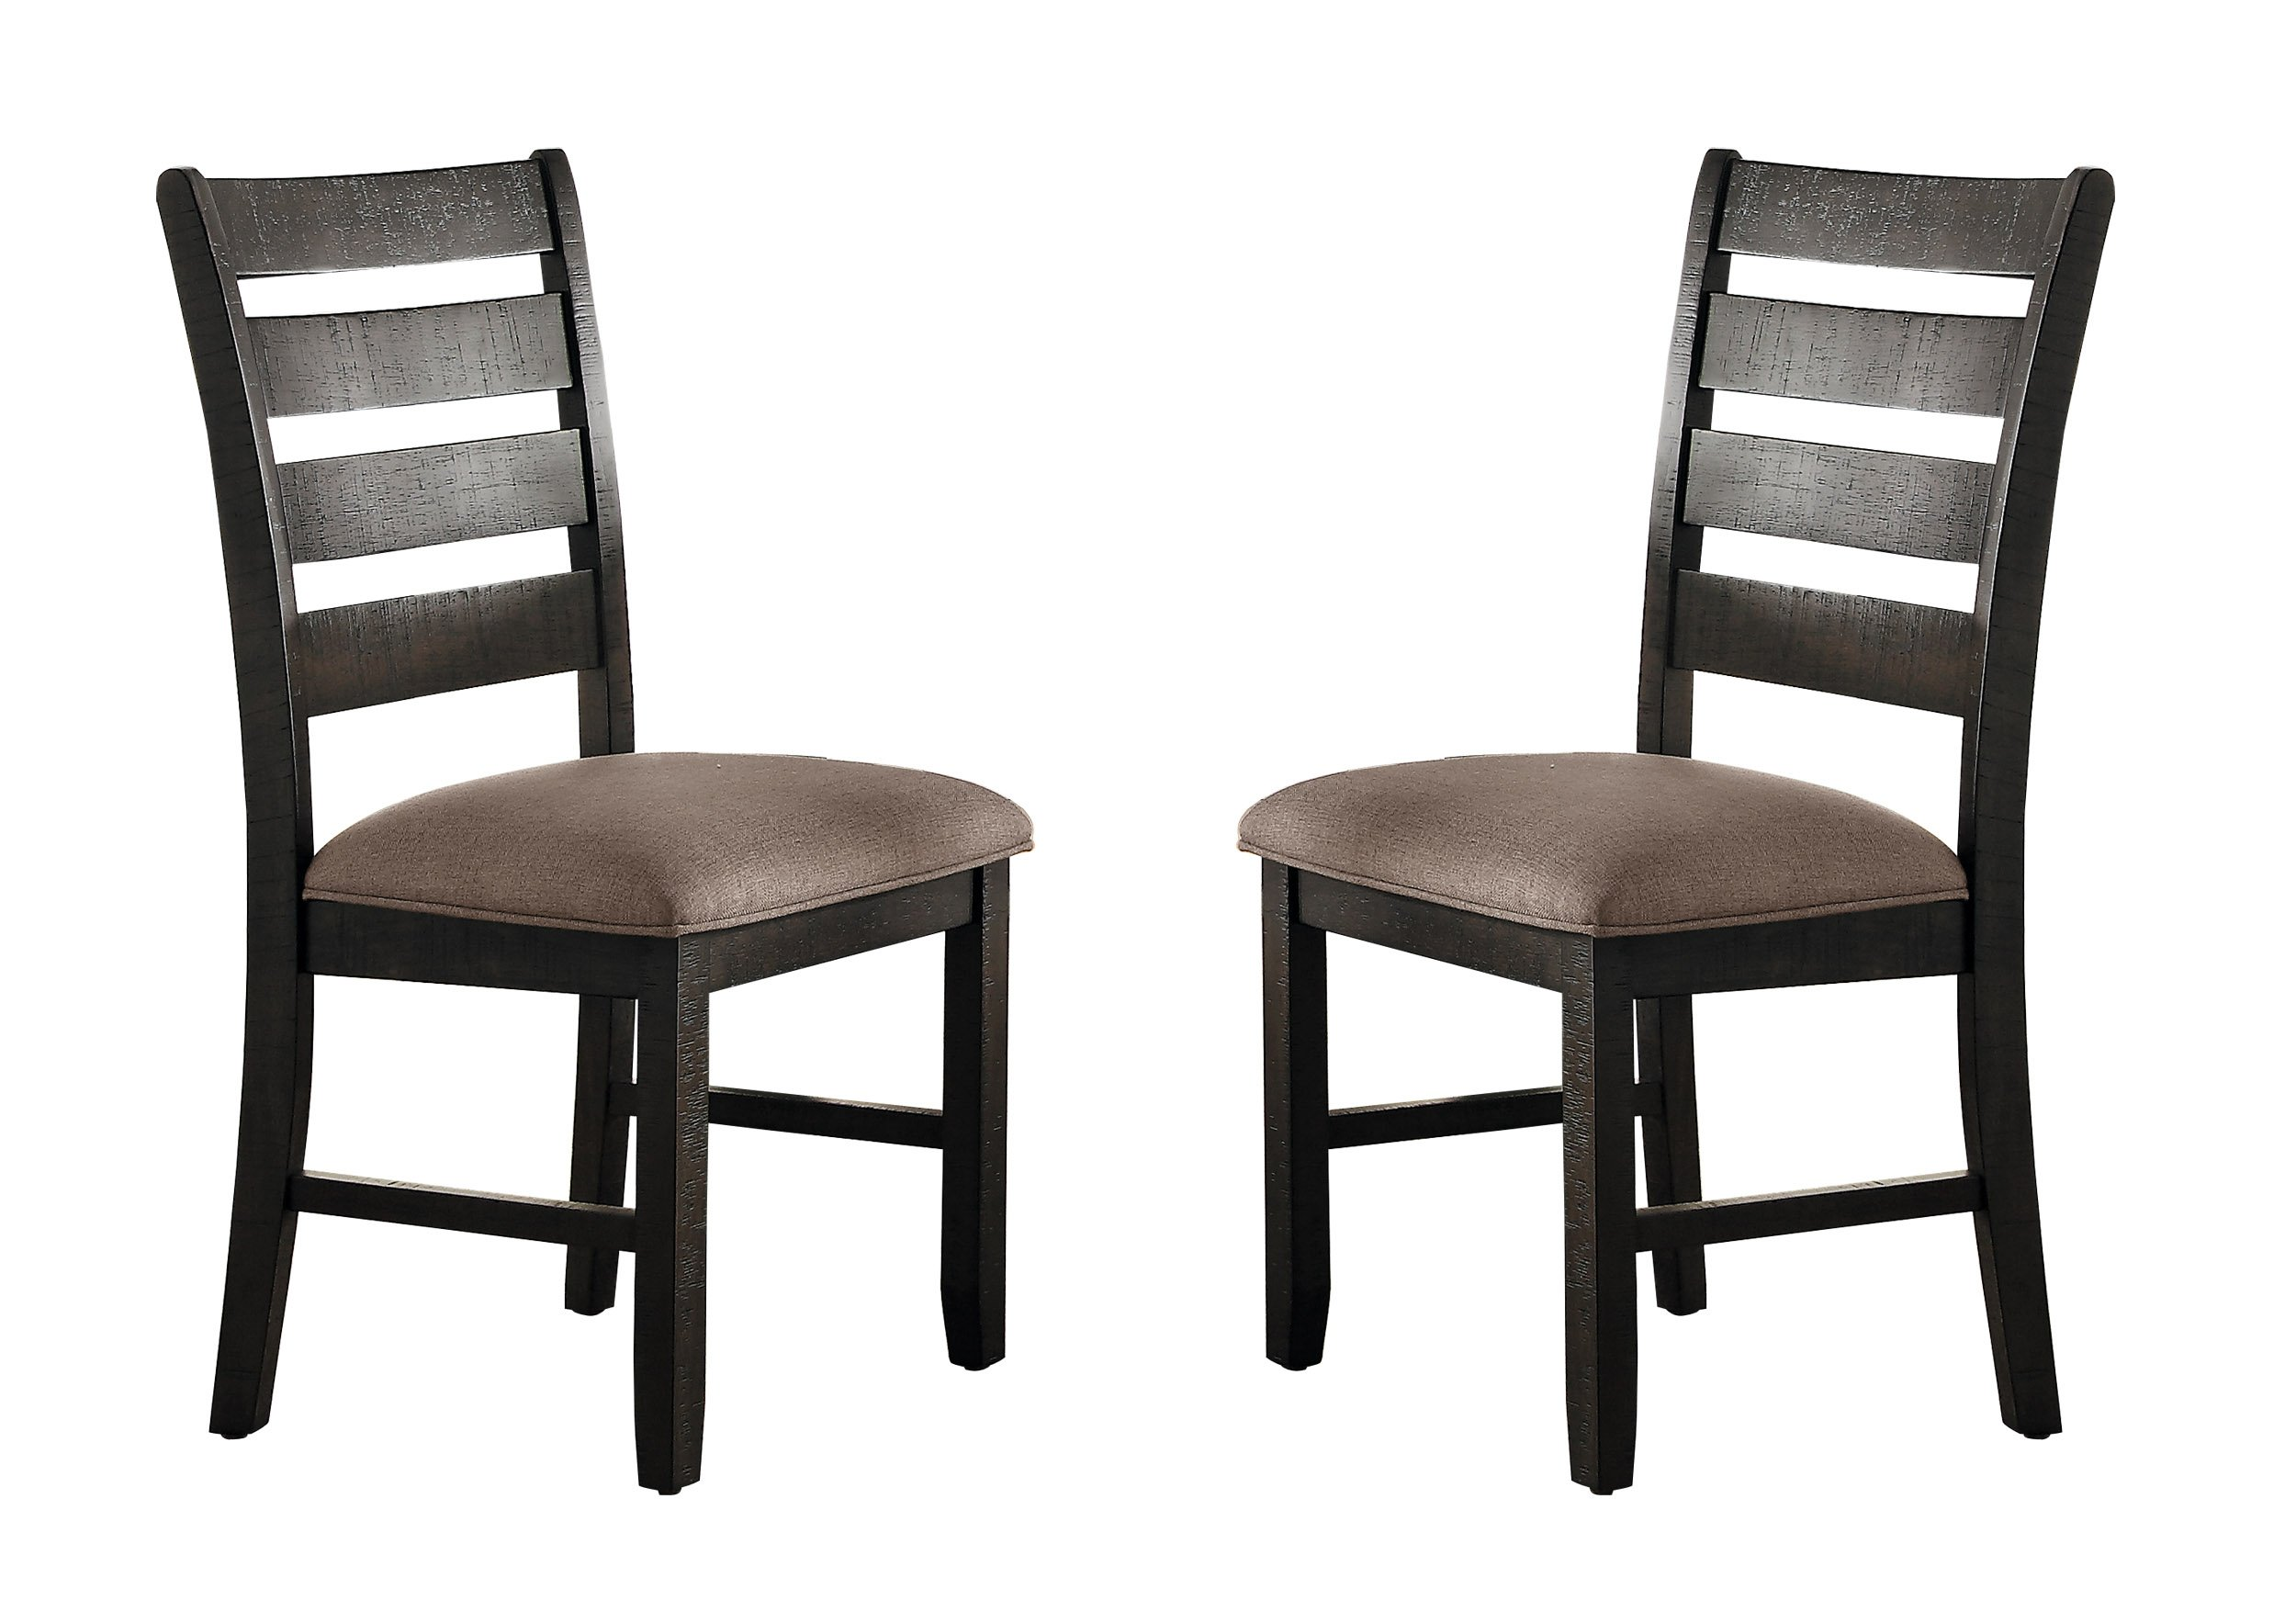 Homelegance Stevensville Set of 2 Rustic Ladder Back Dining Chairs, Dark Brown